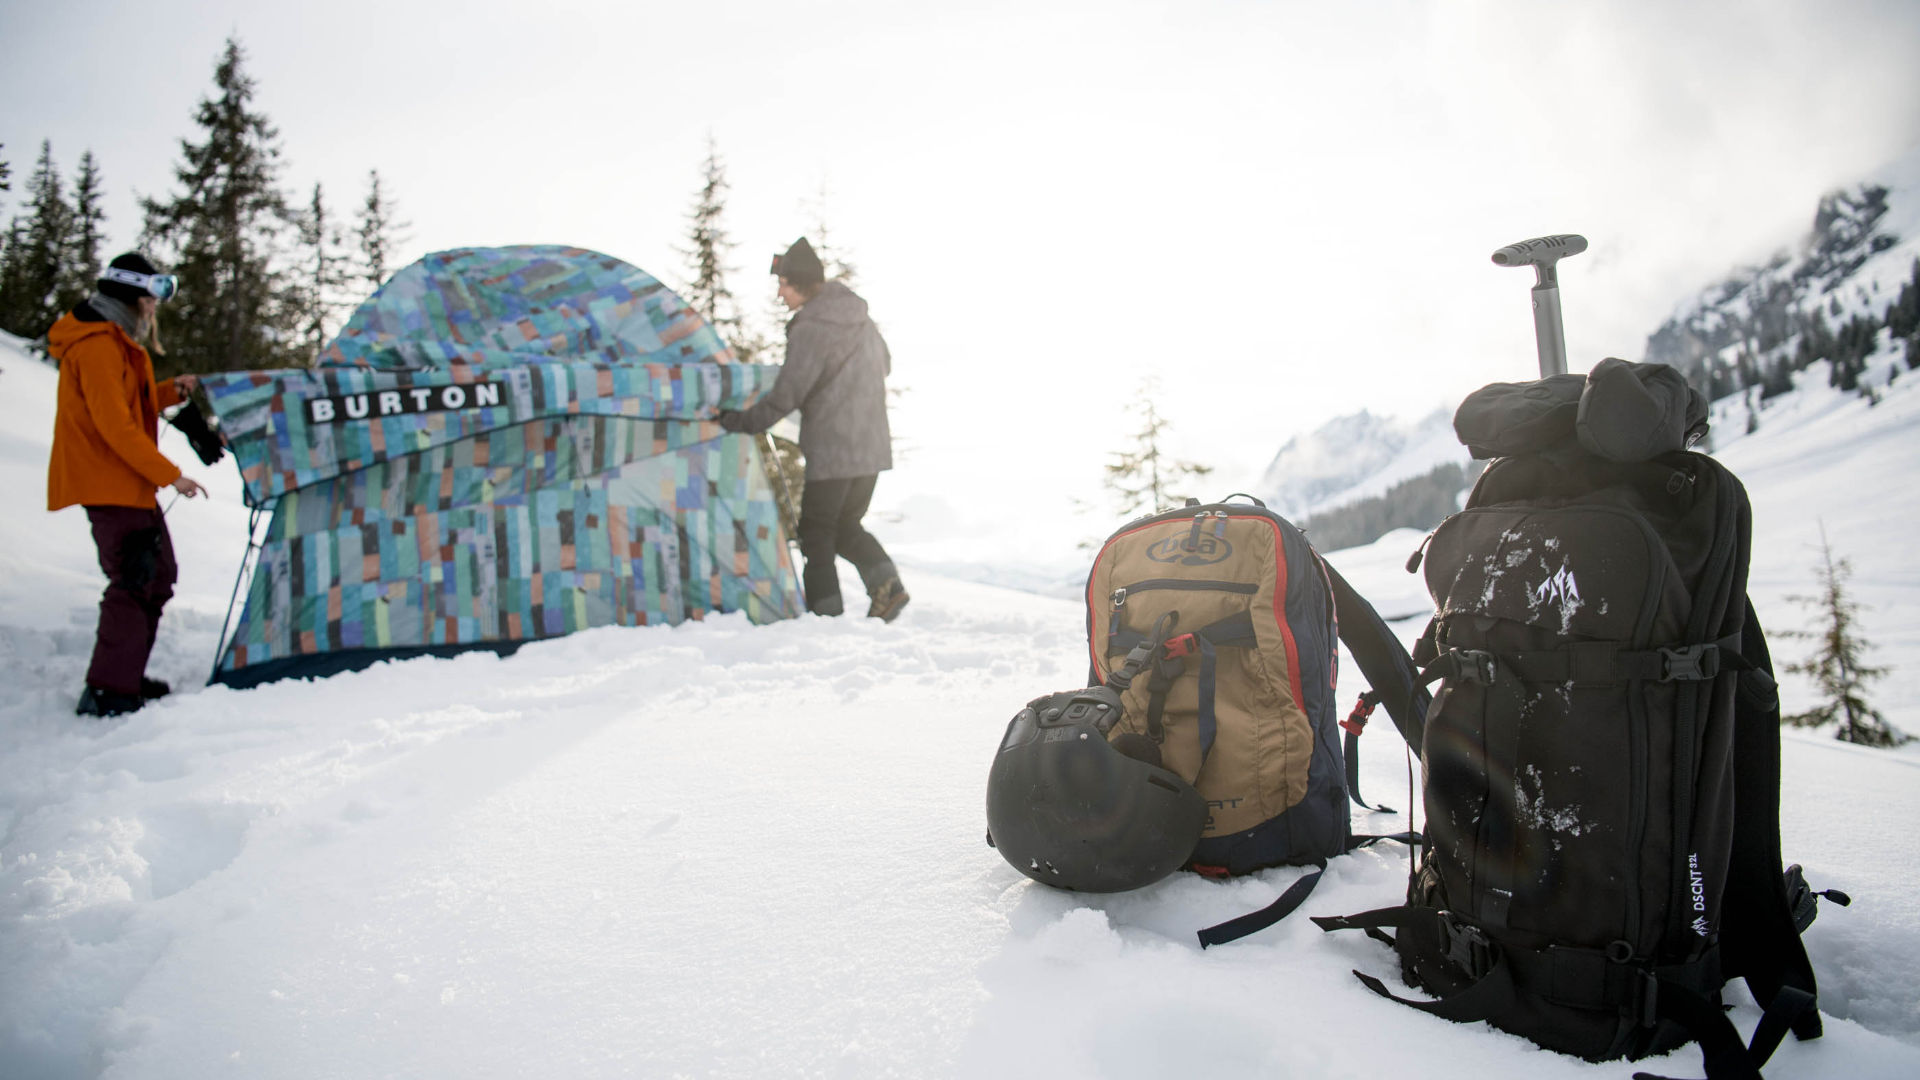 Two avalanche compatible rucksacks outside, with two riders and a tent